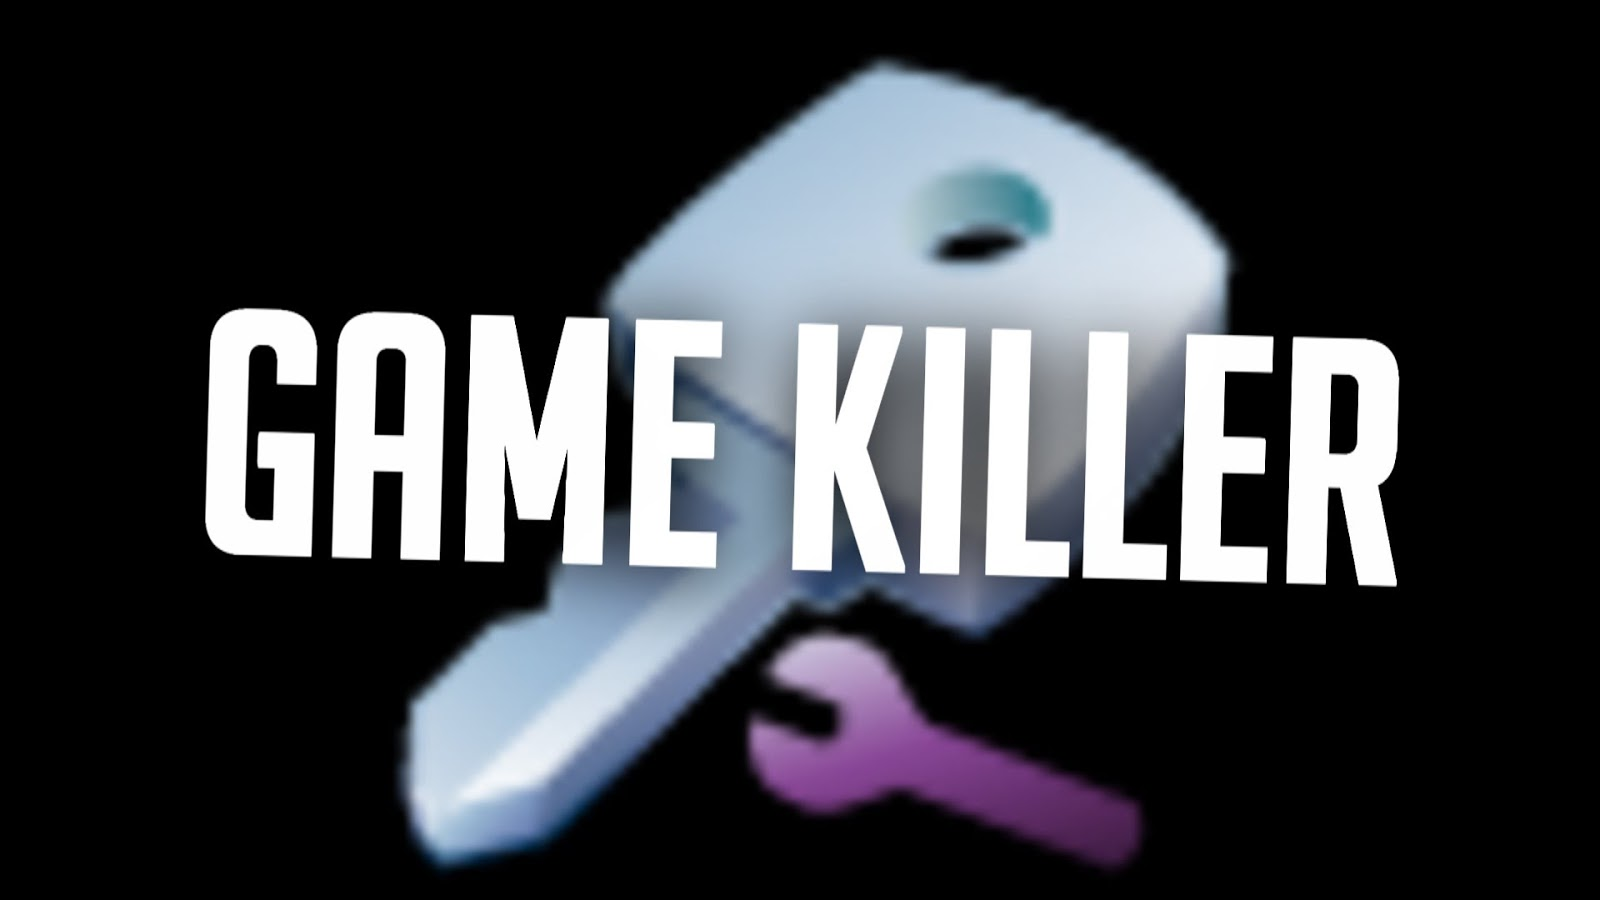 game killer apk download latest version for android (no ad)